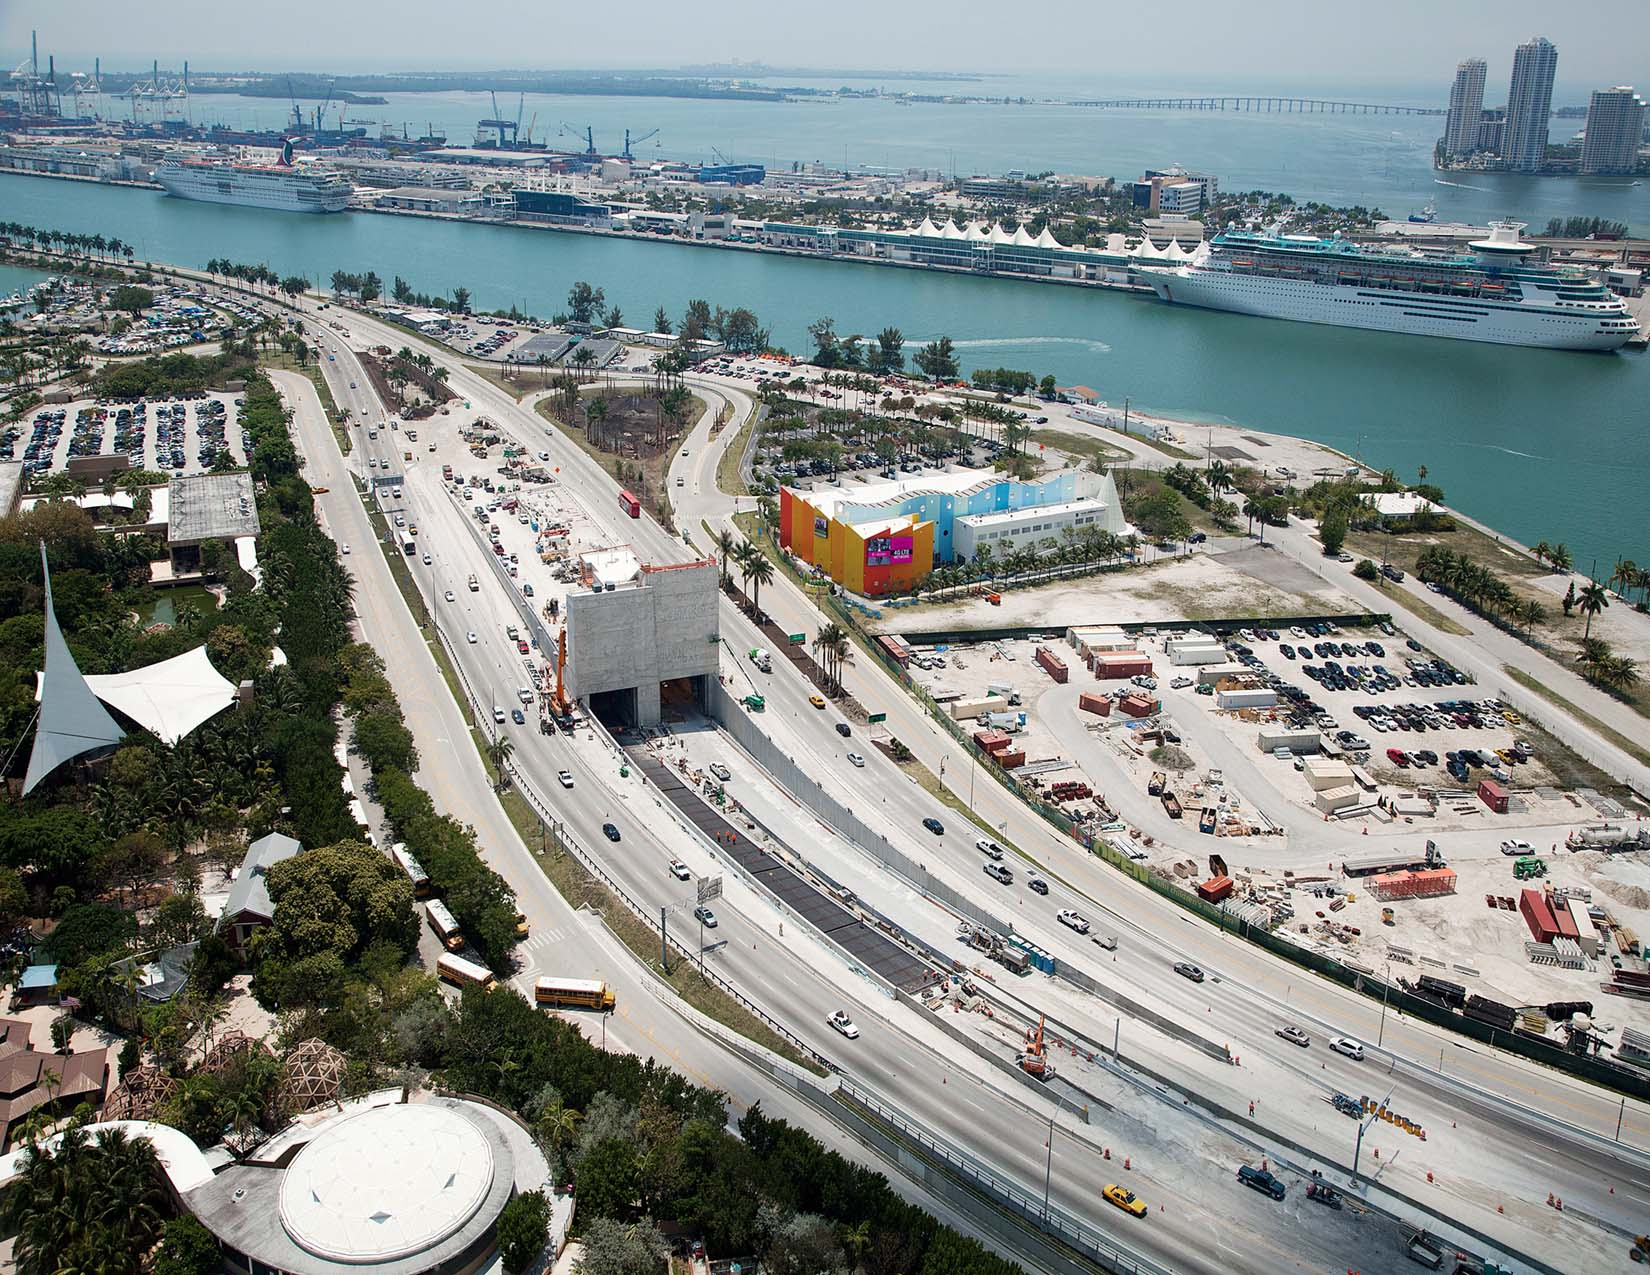 Port of Miami Tunnel - Aerial